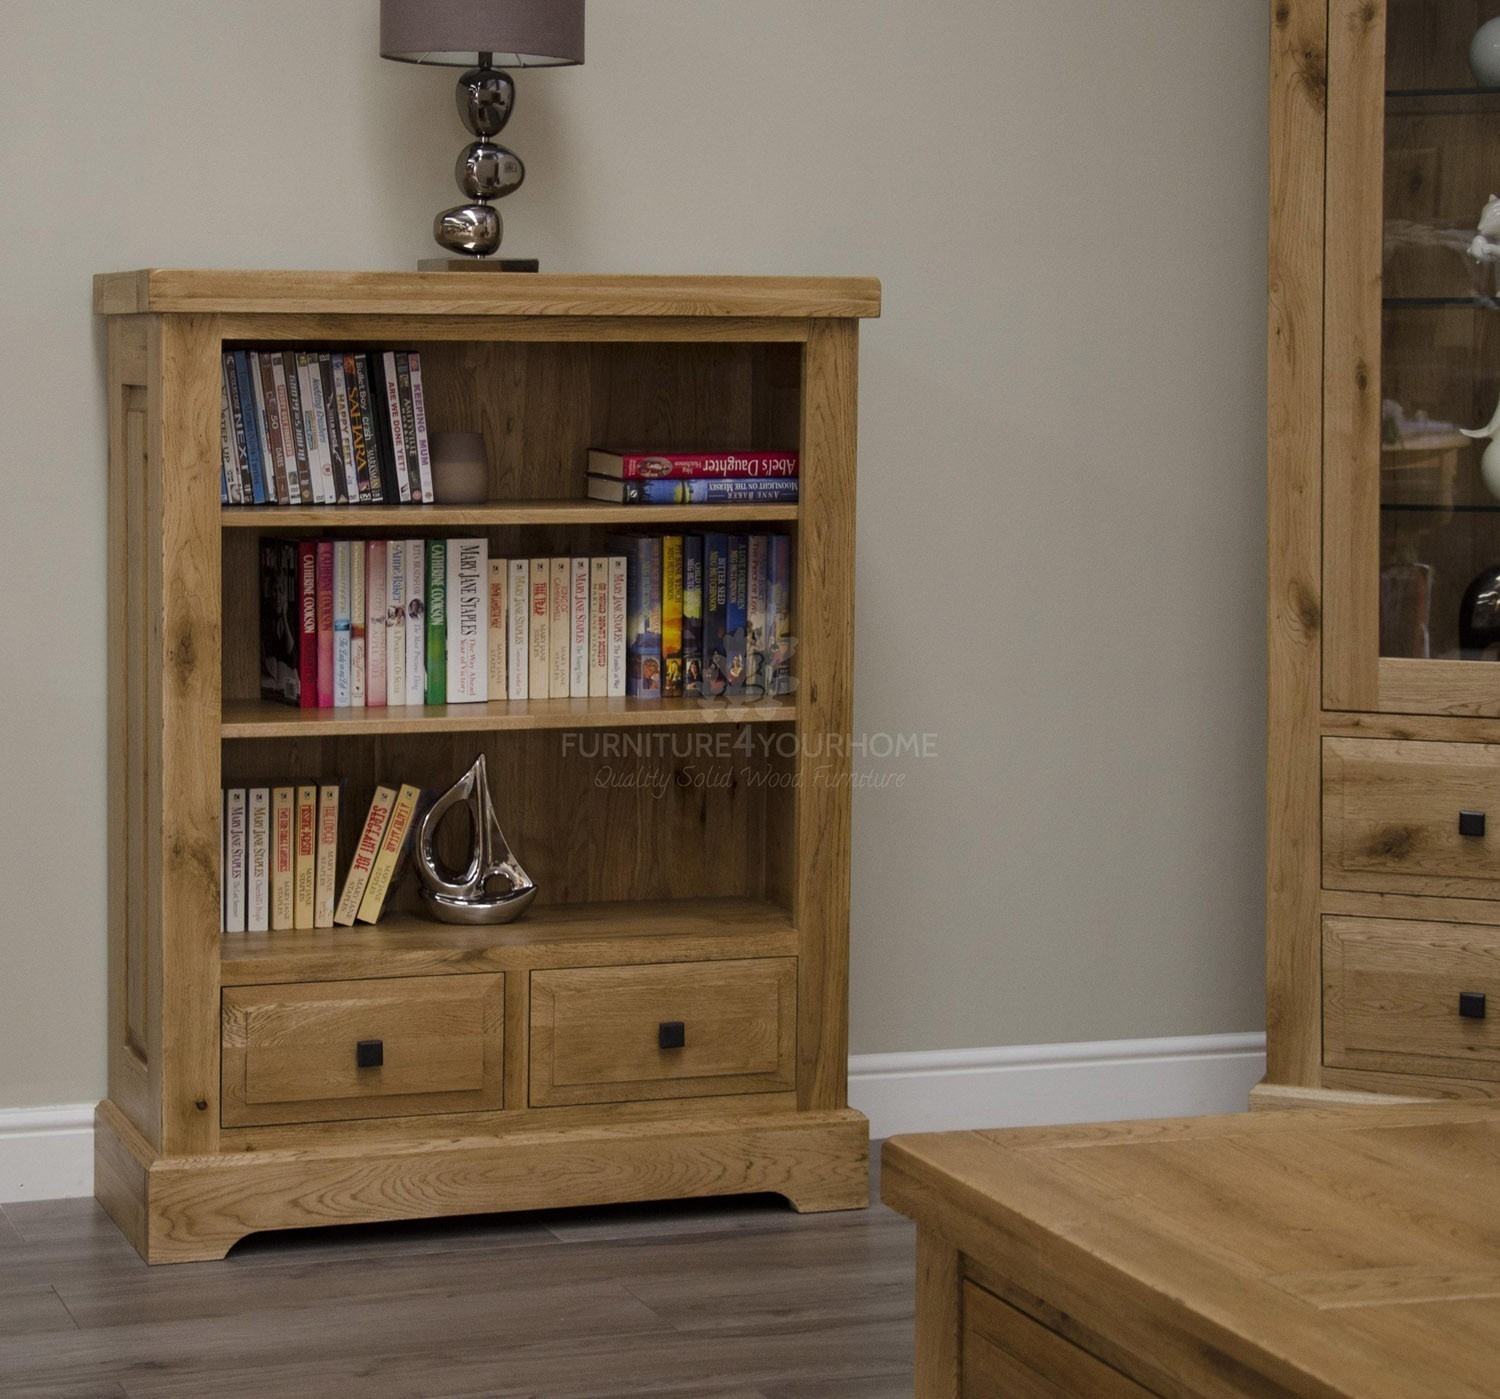 Deluxe Solid Oak 2 Drawer Low Bookcase Furniture4yourhome Throughout Solid Oak Bookcase (View 10 of 15)